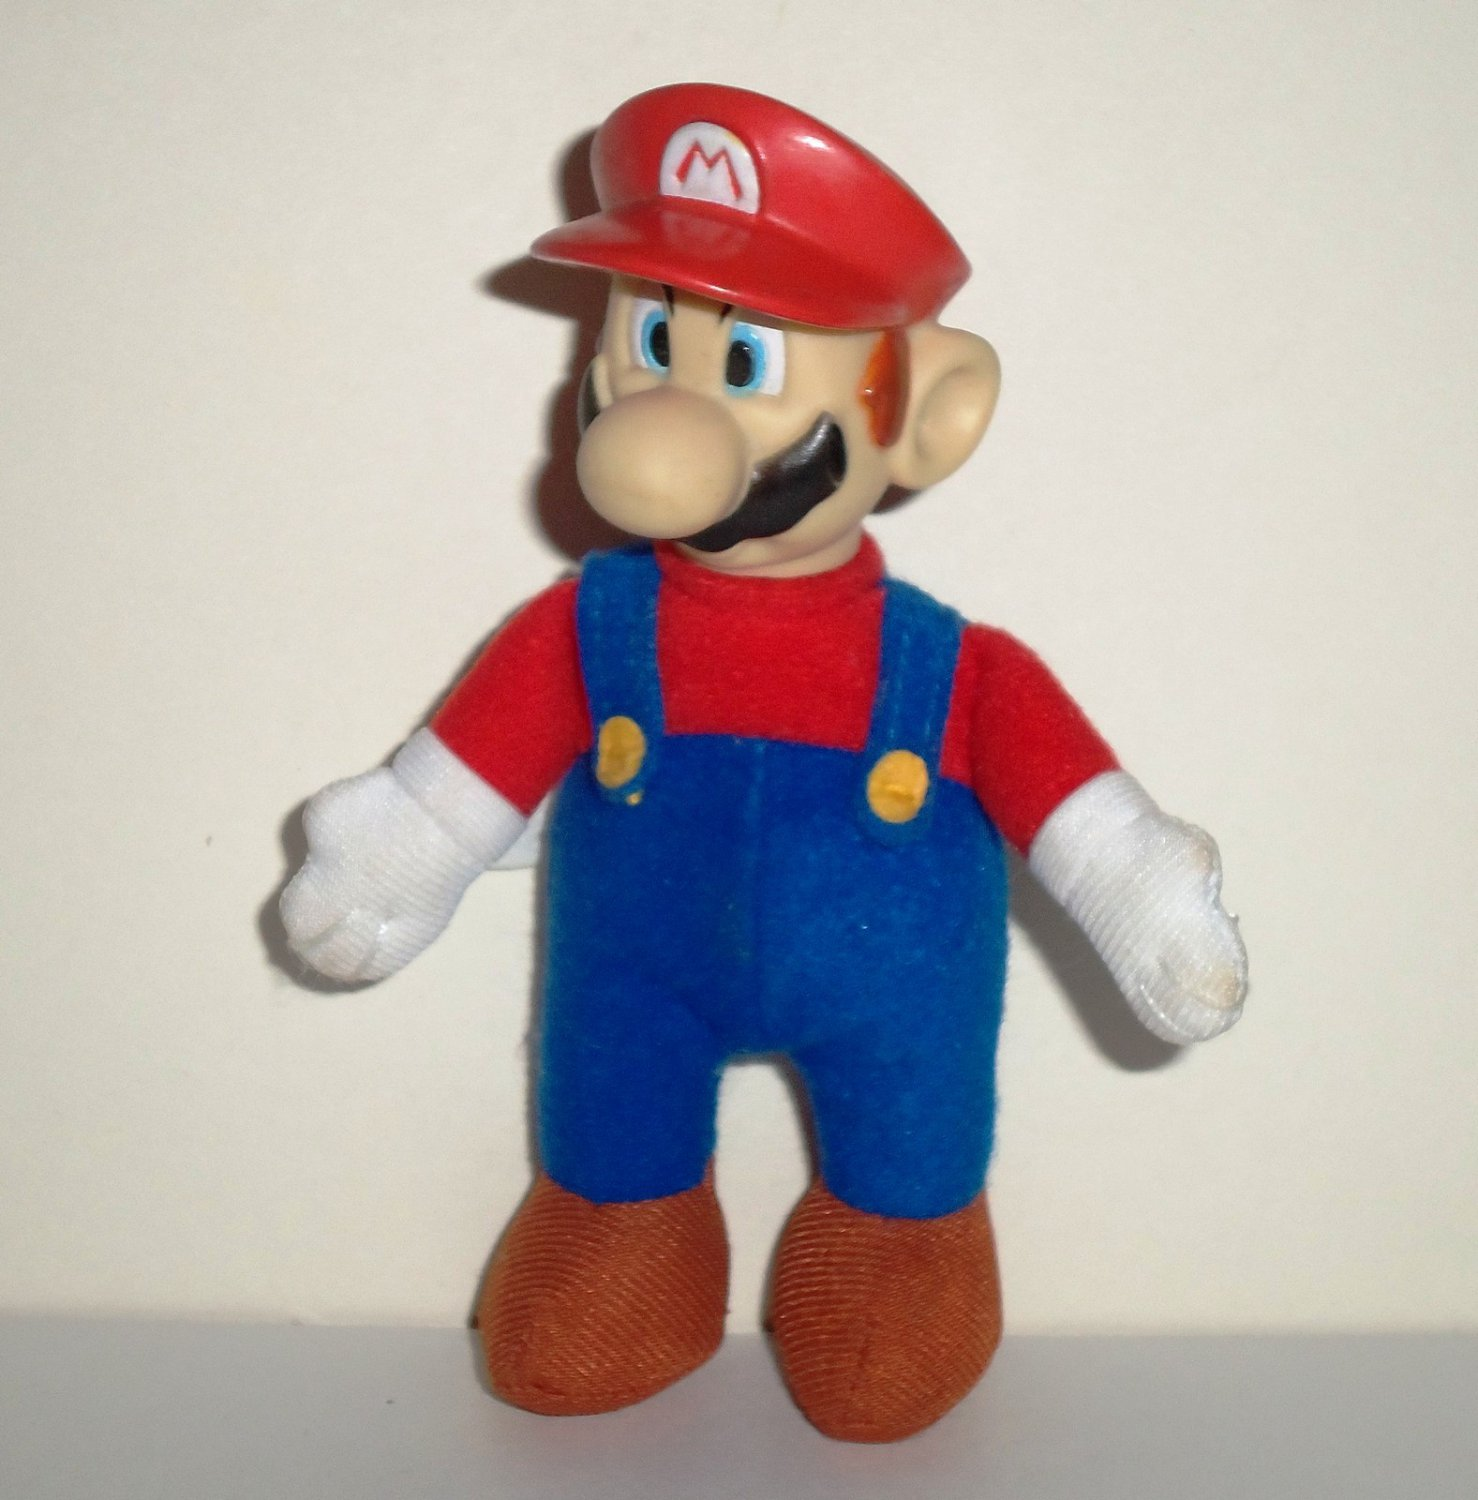 Mario Crafts For Kids